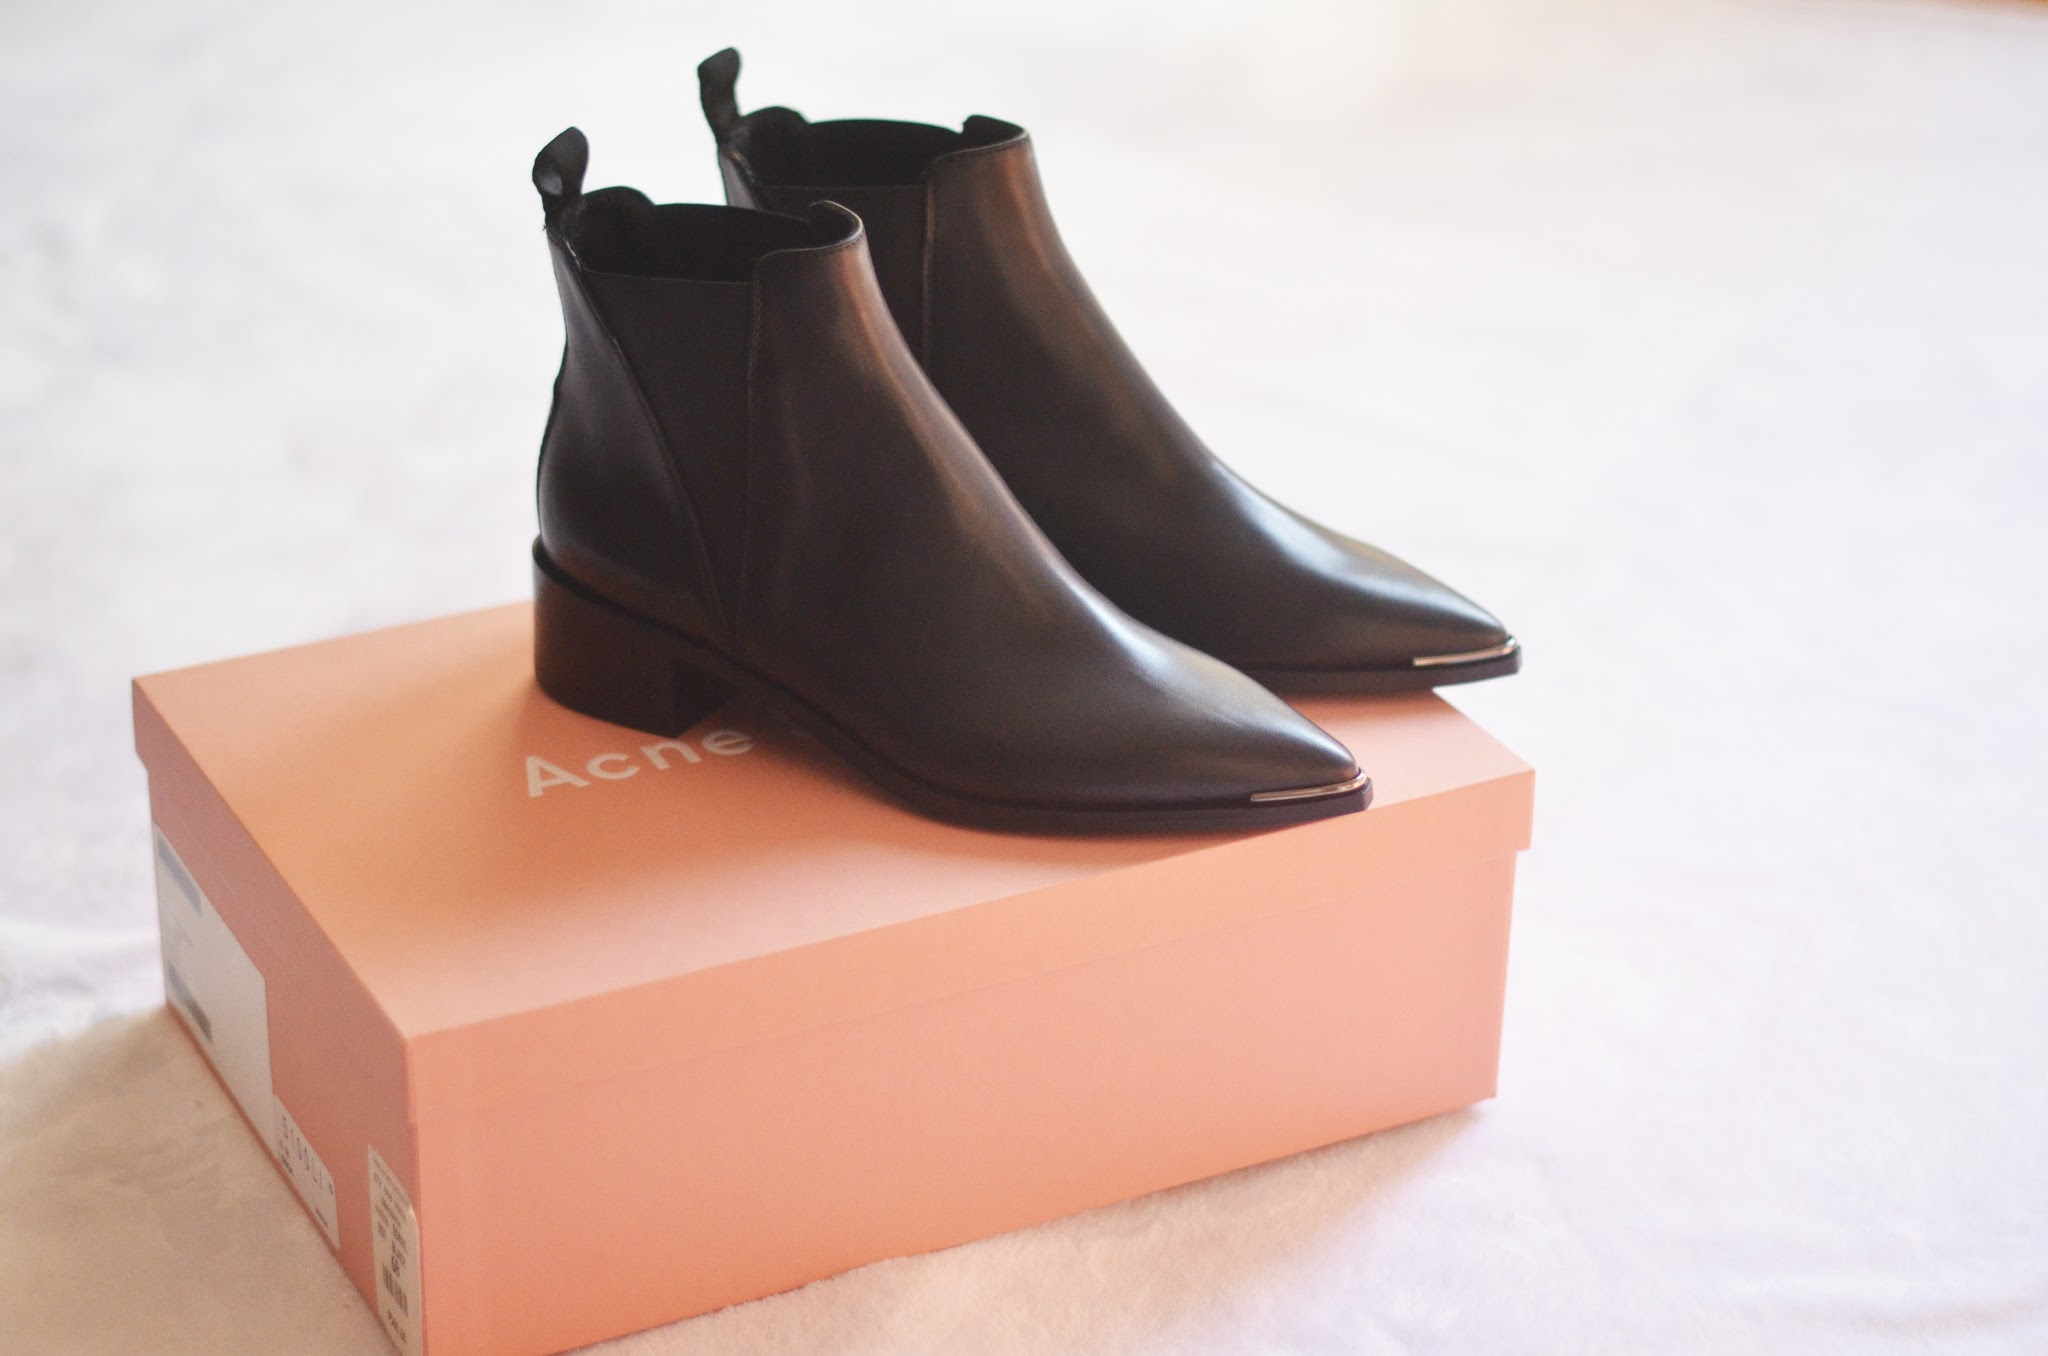 acne jensen boots smooth black leather